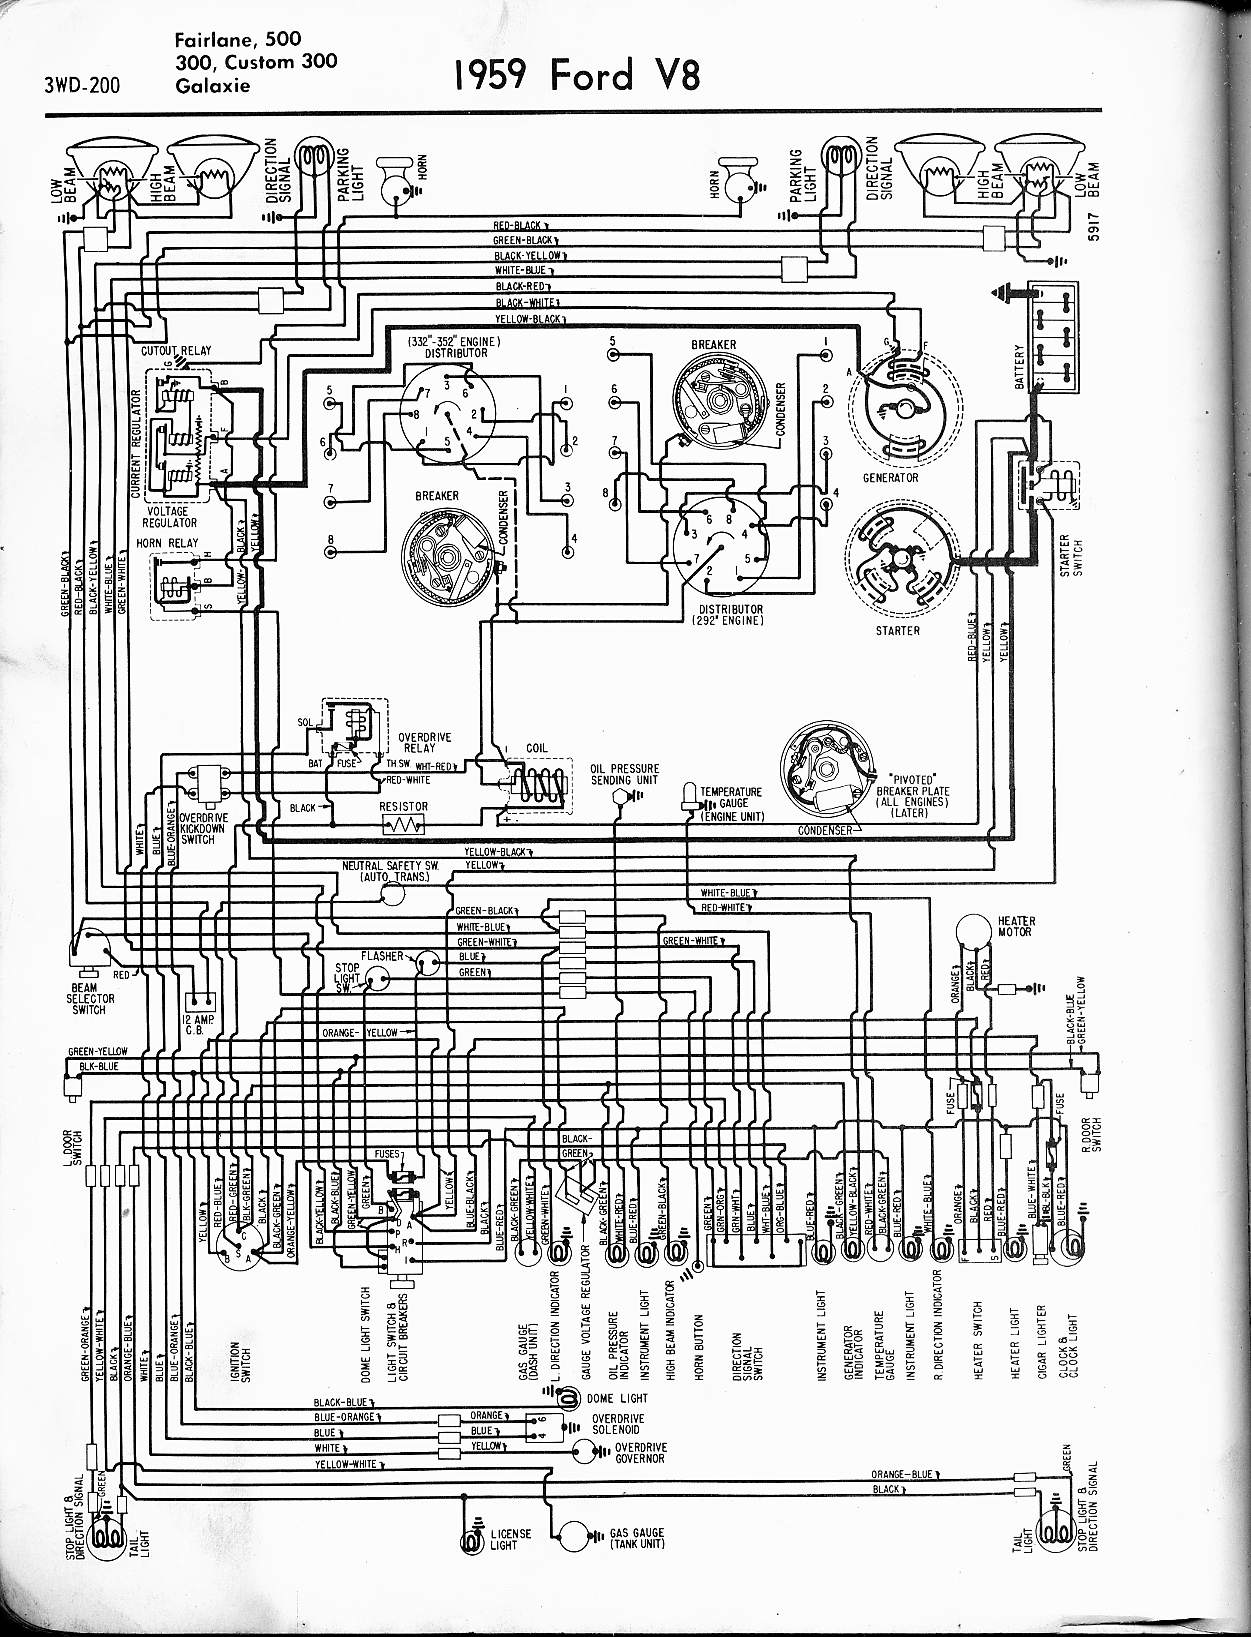 1960 ford f250 wiring diagram wiring diagram query 1978 Ford Truck Wiring Diagram 57 65 ford wiring diagrams 1960 ford f250 wiring diagram